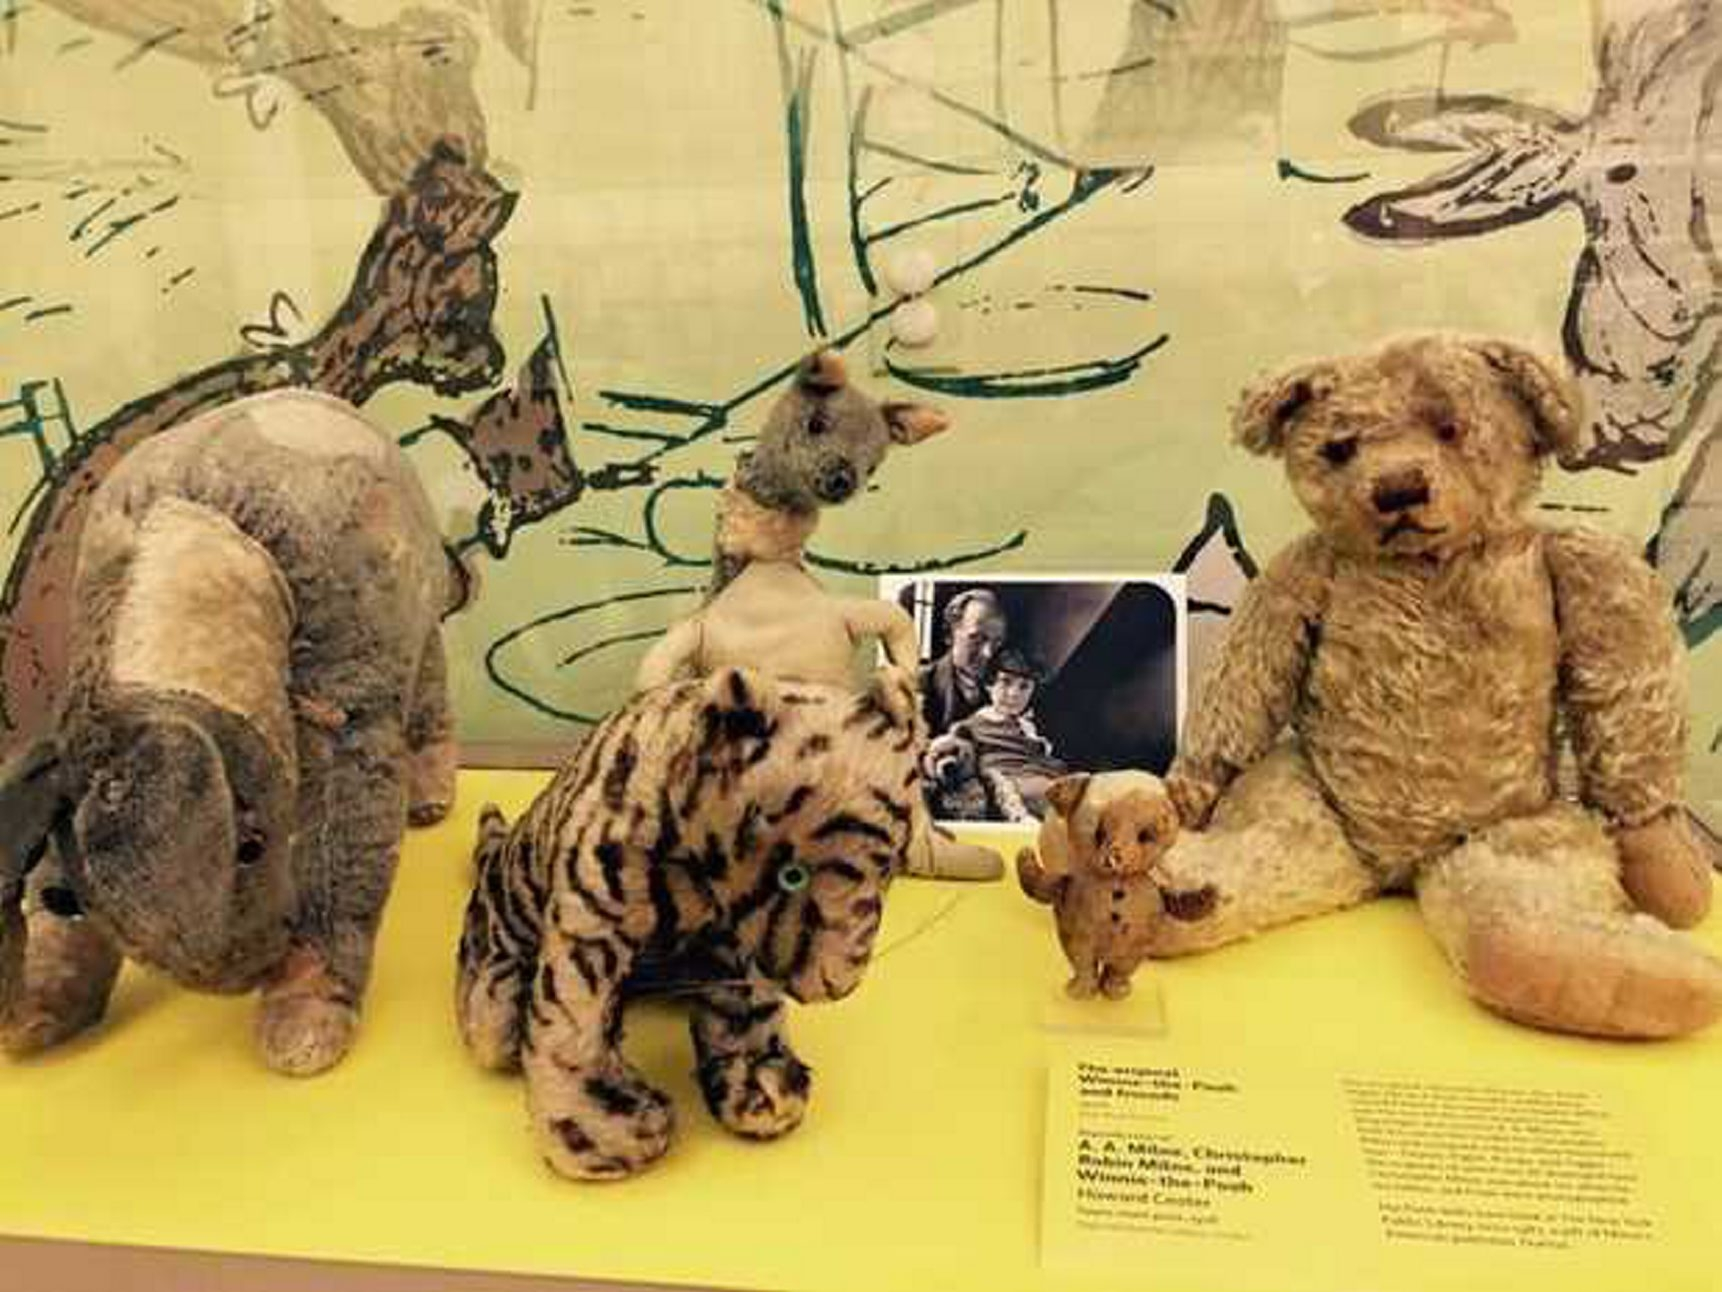 The Winnie-the-Pooh exhibit currently at the New York Public Library.